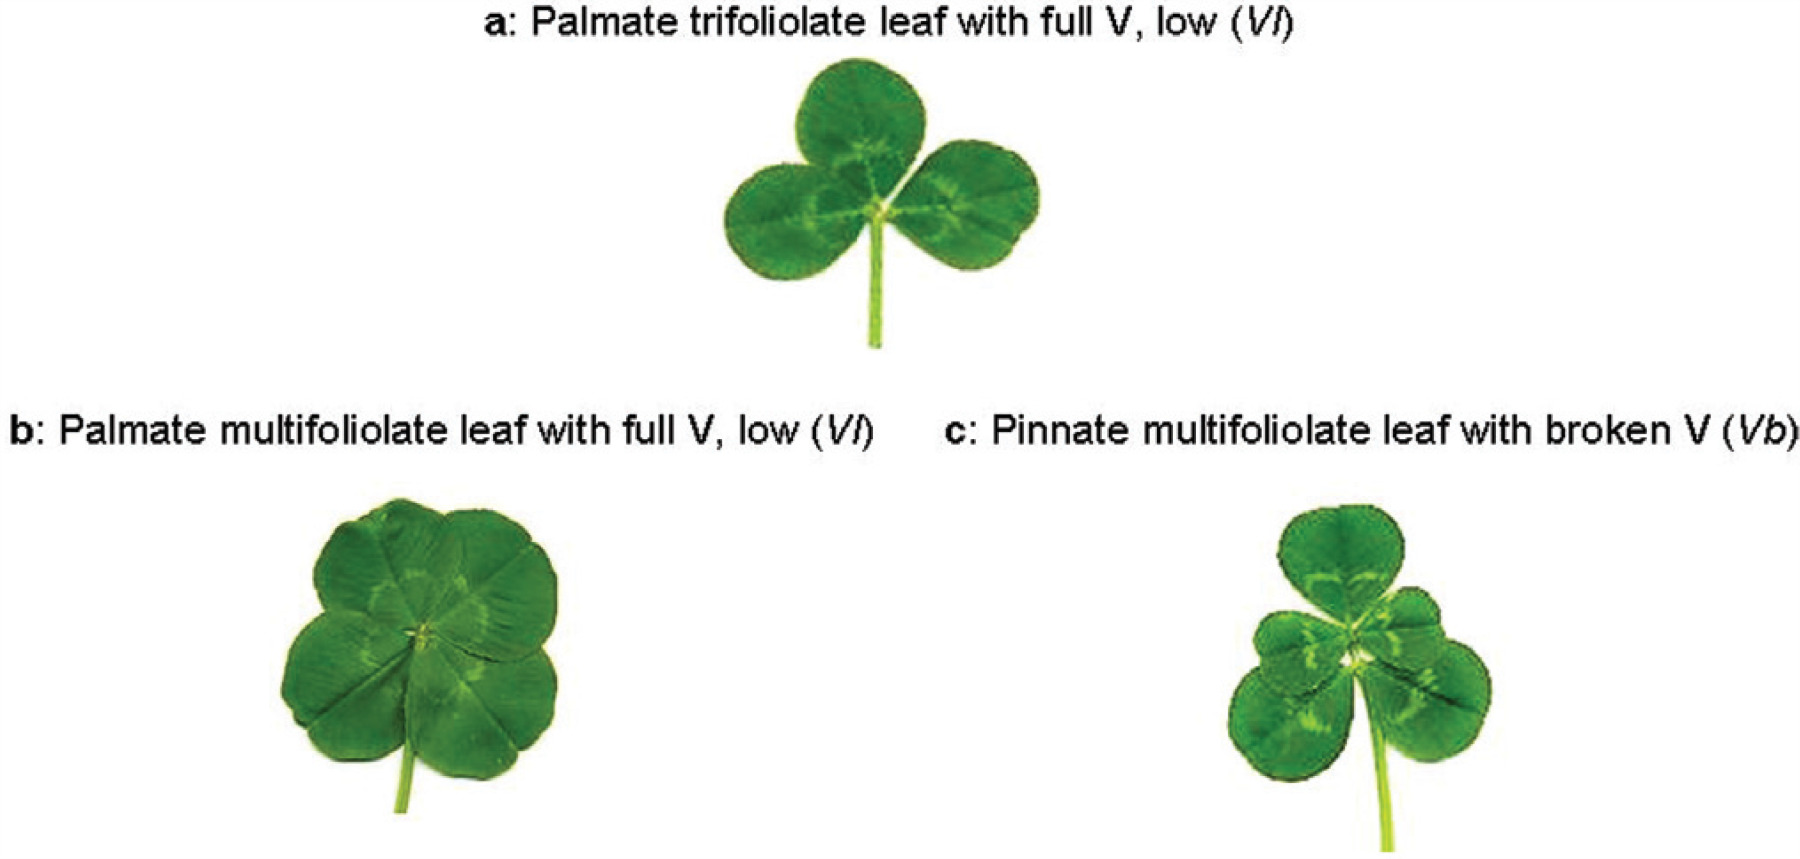 2010 Leaf Trait Coloration in White Clover csc2cropsci2009080457-fig-0002-m.jpg